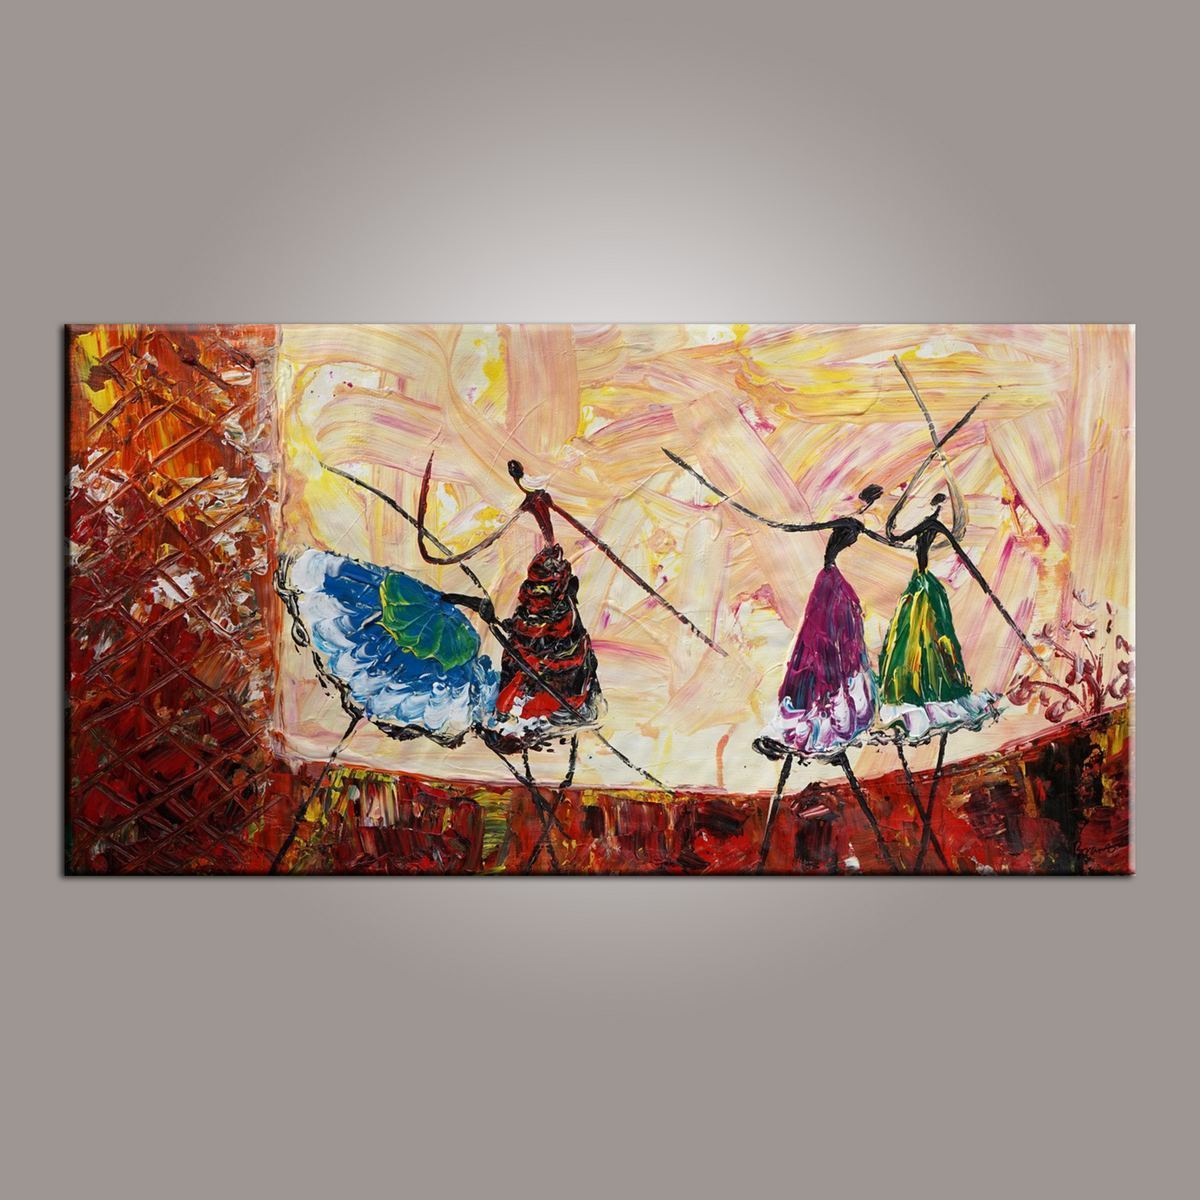 Abstract Painting, Ballet Dancer Art, Canvas Painting, Abstract Art, Hand Painted Art, Bedroom Wall Art-ArtWorkCrafts.com